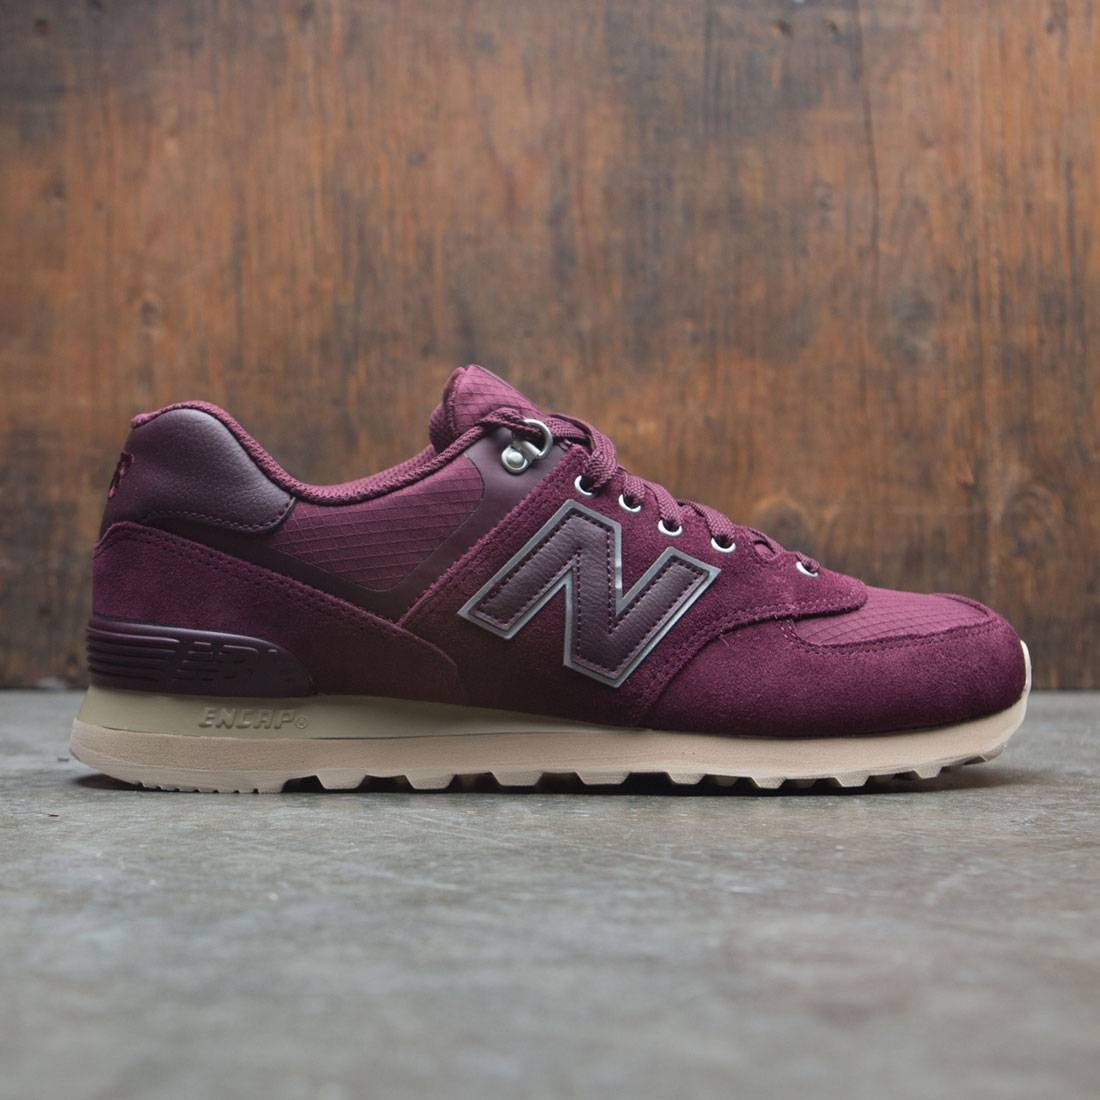 12013d2b6b951 New Balance Men 574 Outdoor Activist ML574PKS burgundy chocolate cherry sand